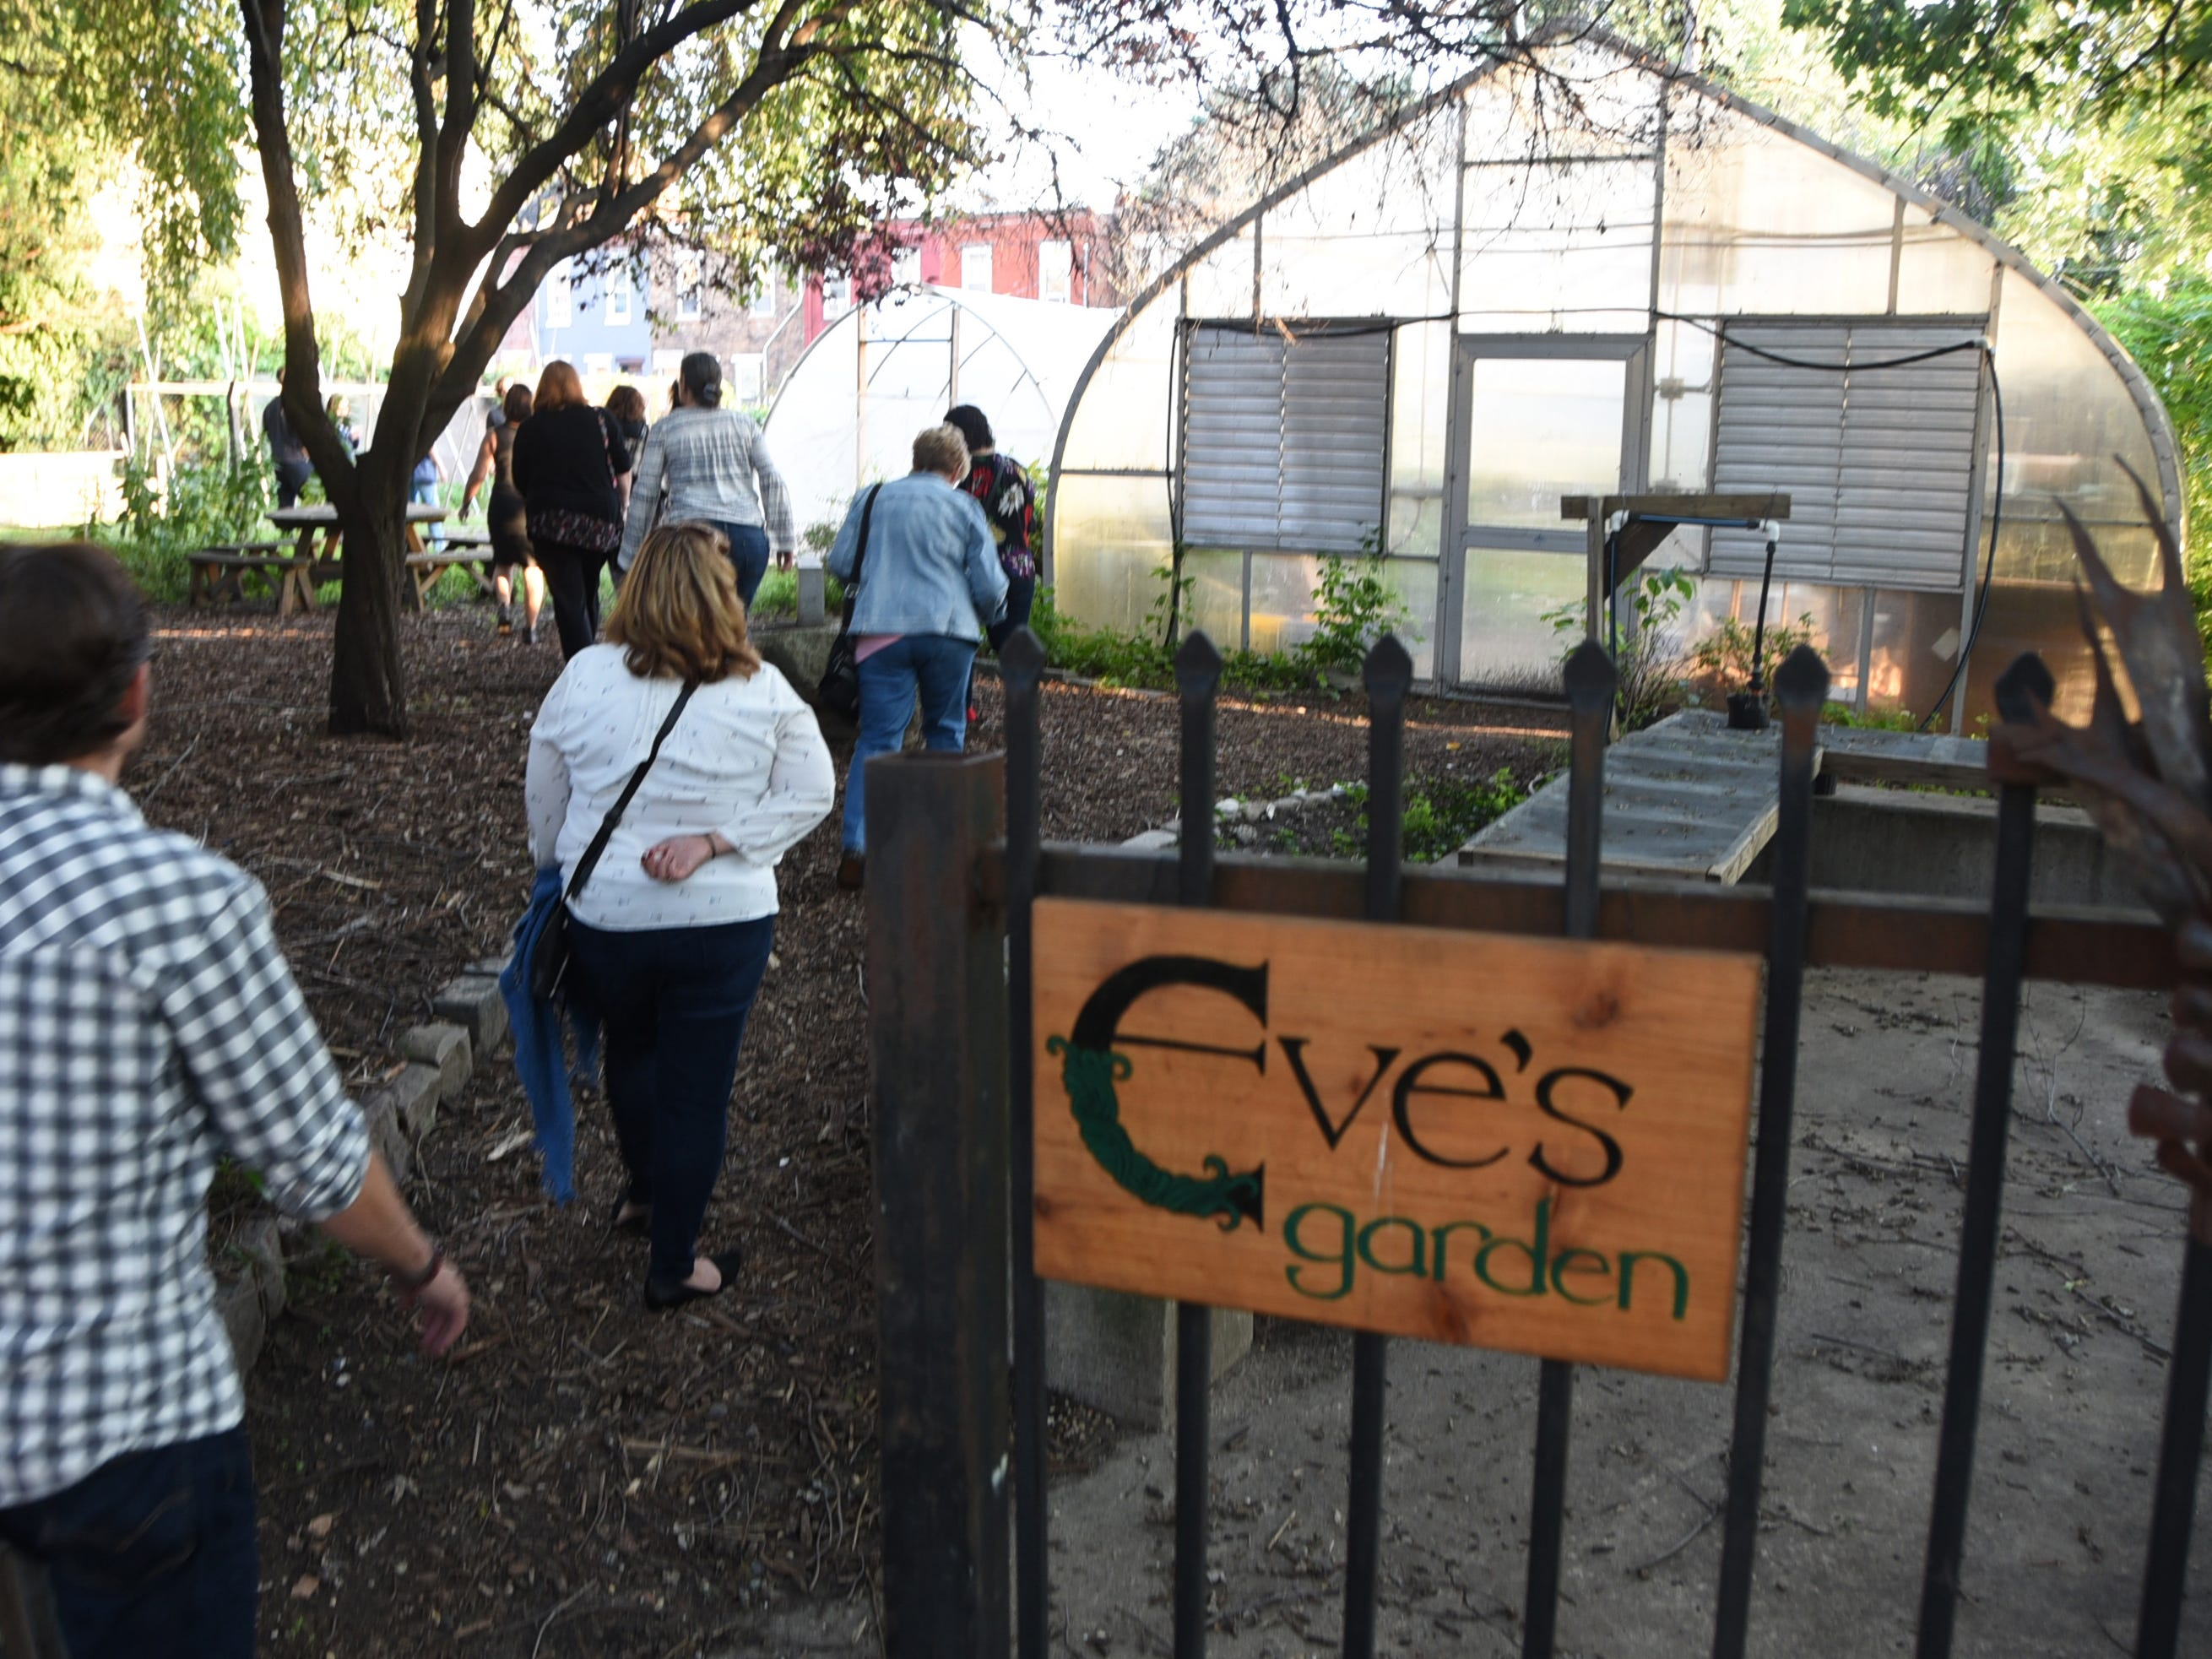 A group tours Eve's Garden in Camden during the #WasteNot for CFET event at the FireWorks Gallery in South Camden on Saturday, September 29, 2018.  The Courier-Post partnered with the Farm & Fisherman Tavern in Cherry Hill and other community organizations to hold the event that offered a special tasting, farm tour and community conversation about reducing food waste.